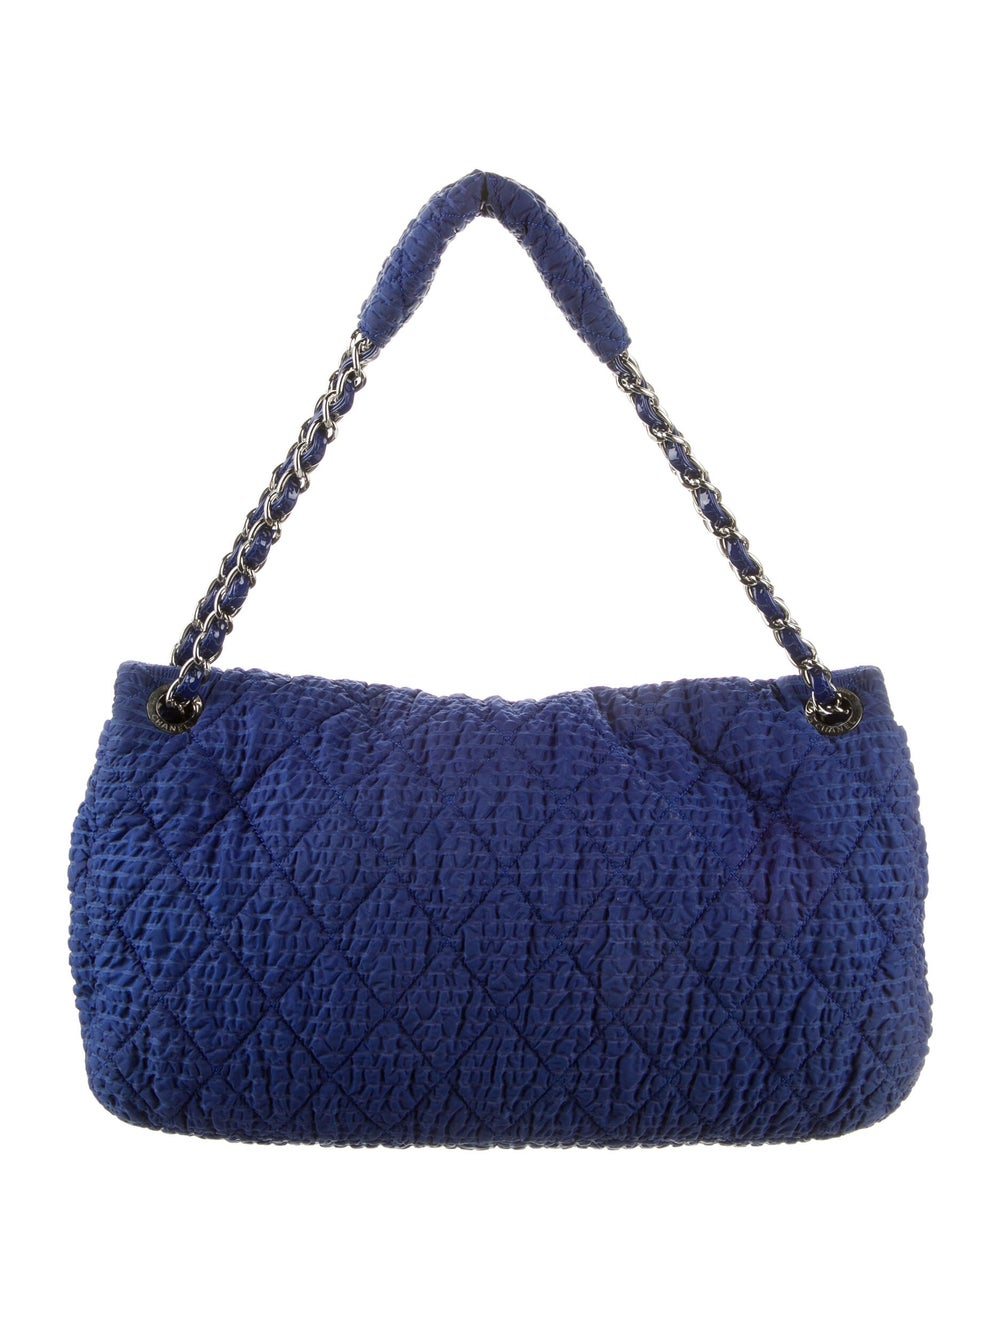 Chanel Cloquee Flap Bag Blue - image 4